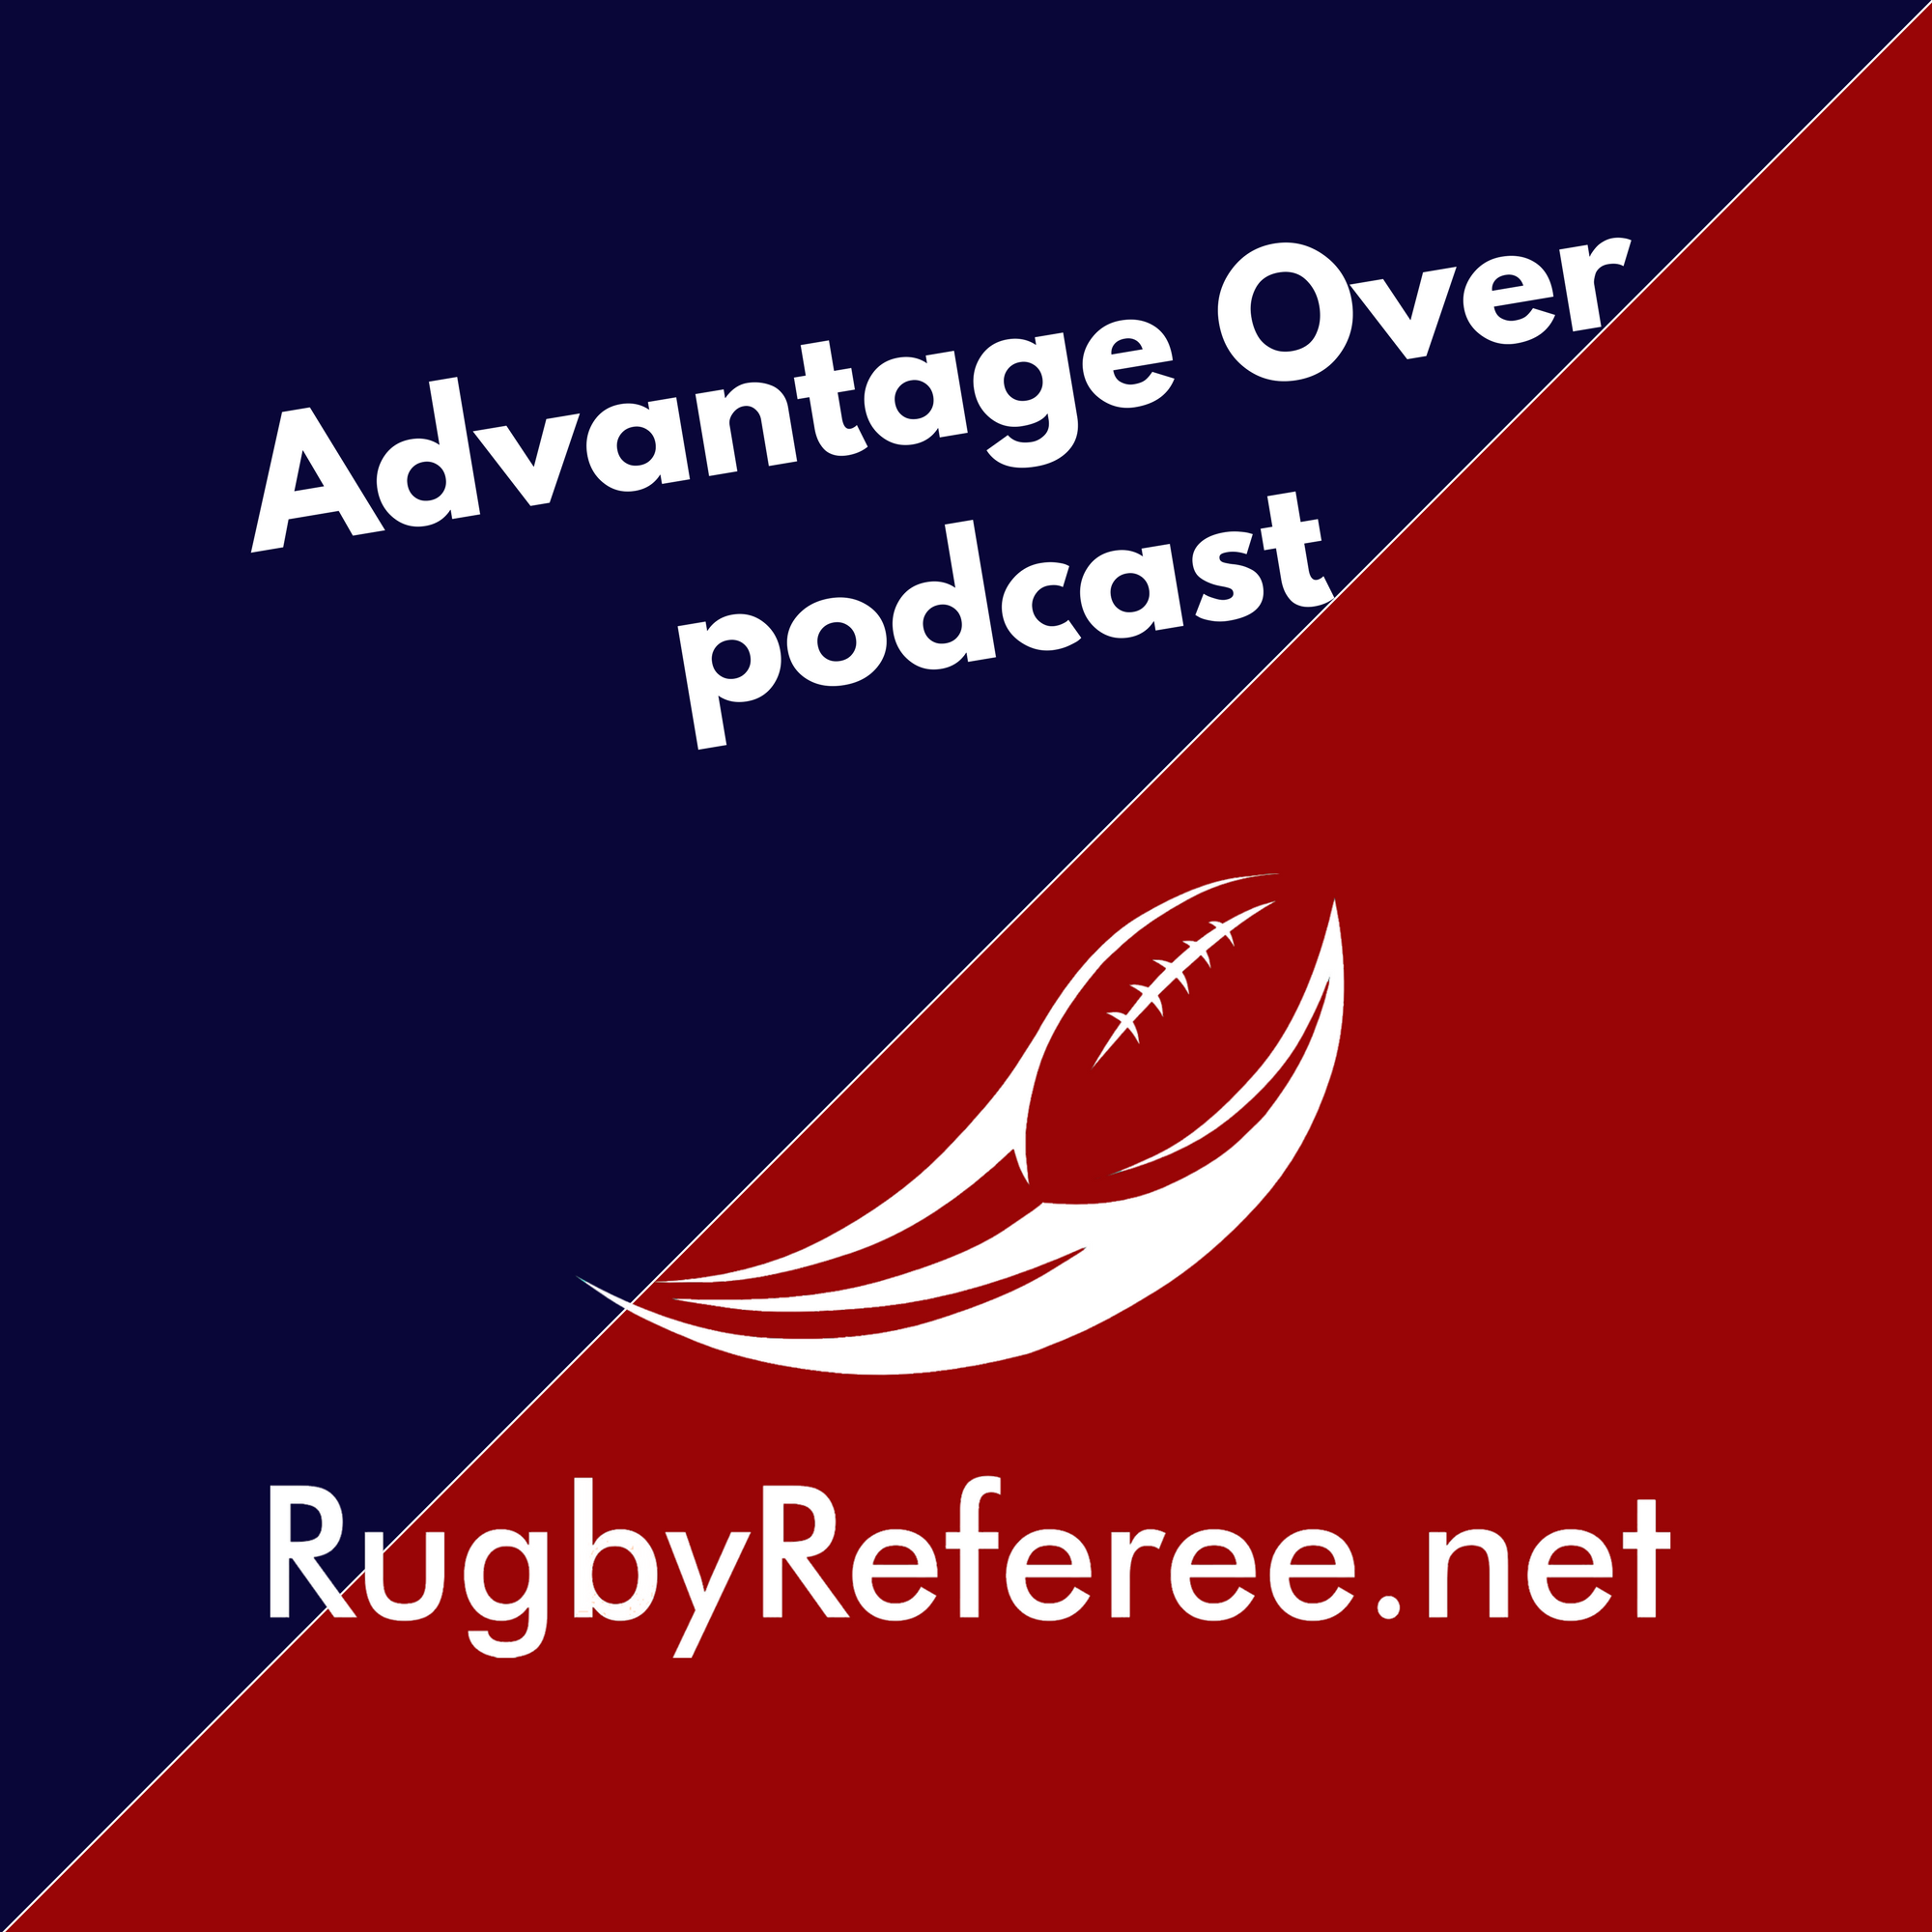 Advantage Over Podcast